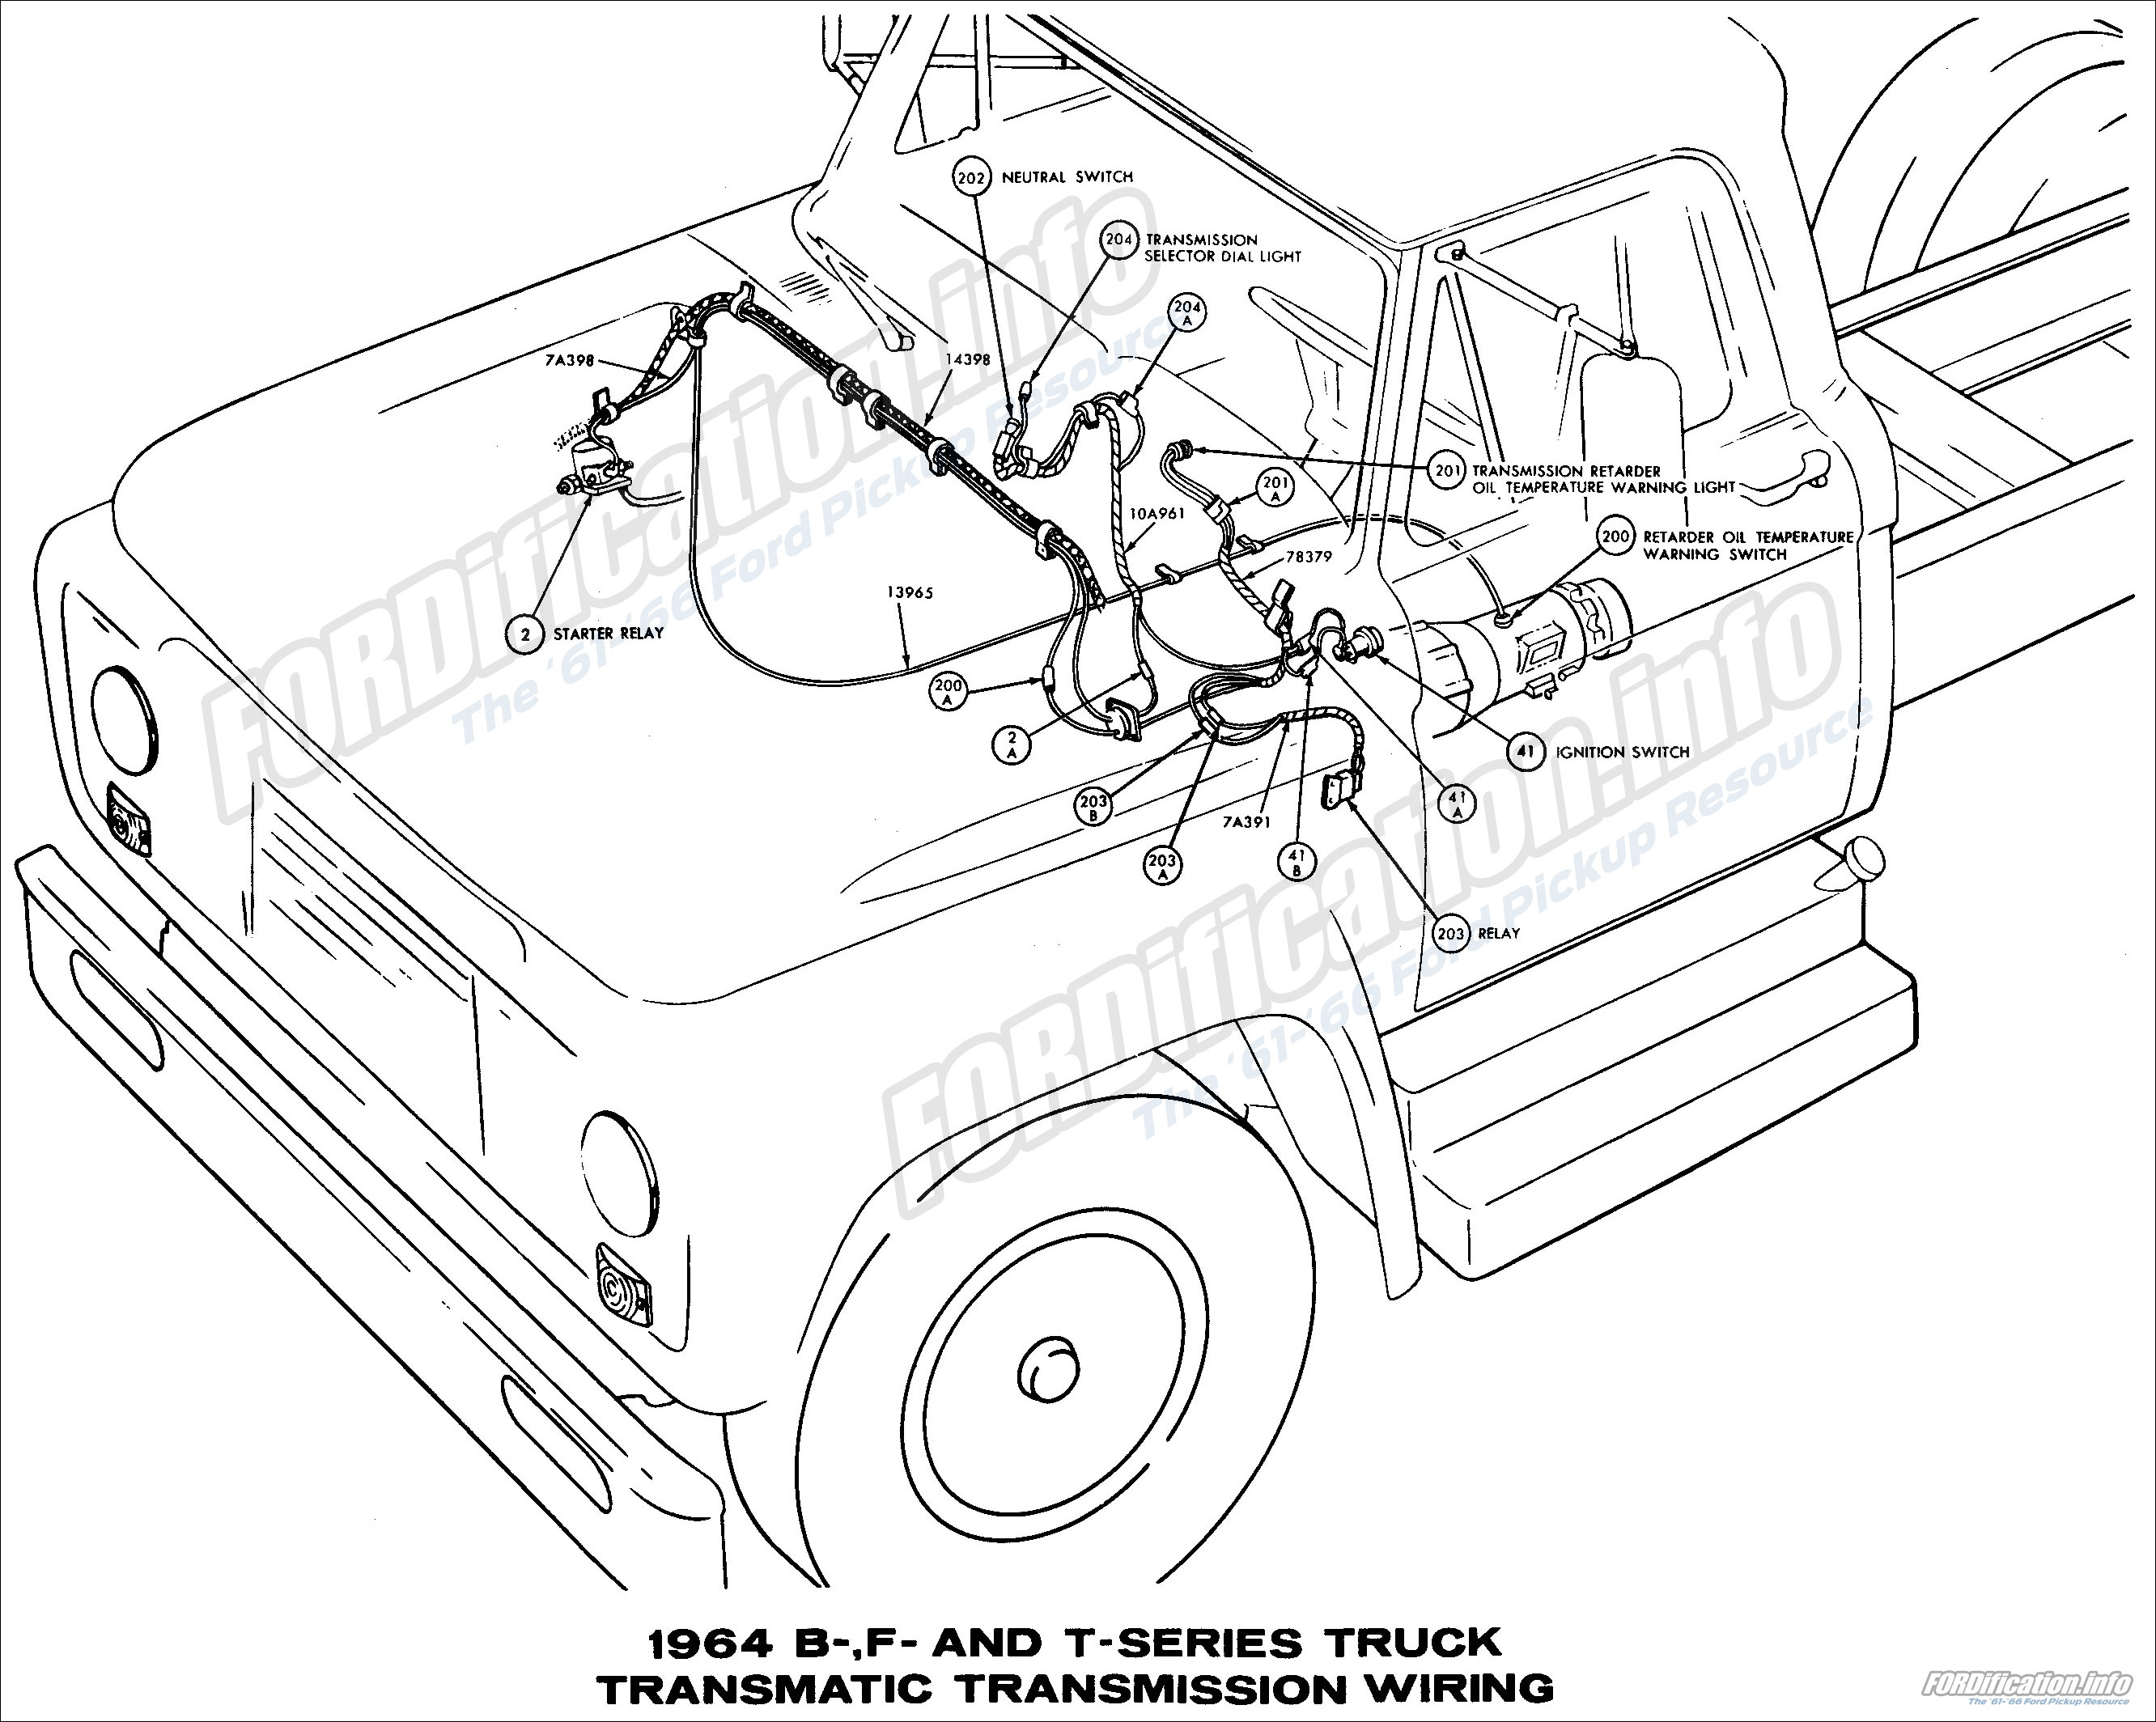 1964_13 1964 f100 wiring diagram 1965 f100 wiring diagram \u2022 free wiring fordification wiring diagram at gsmportal.co